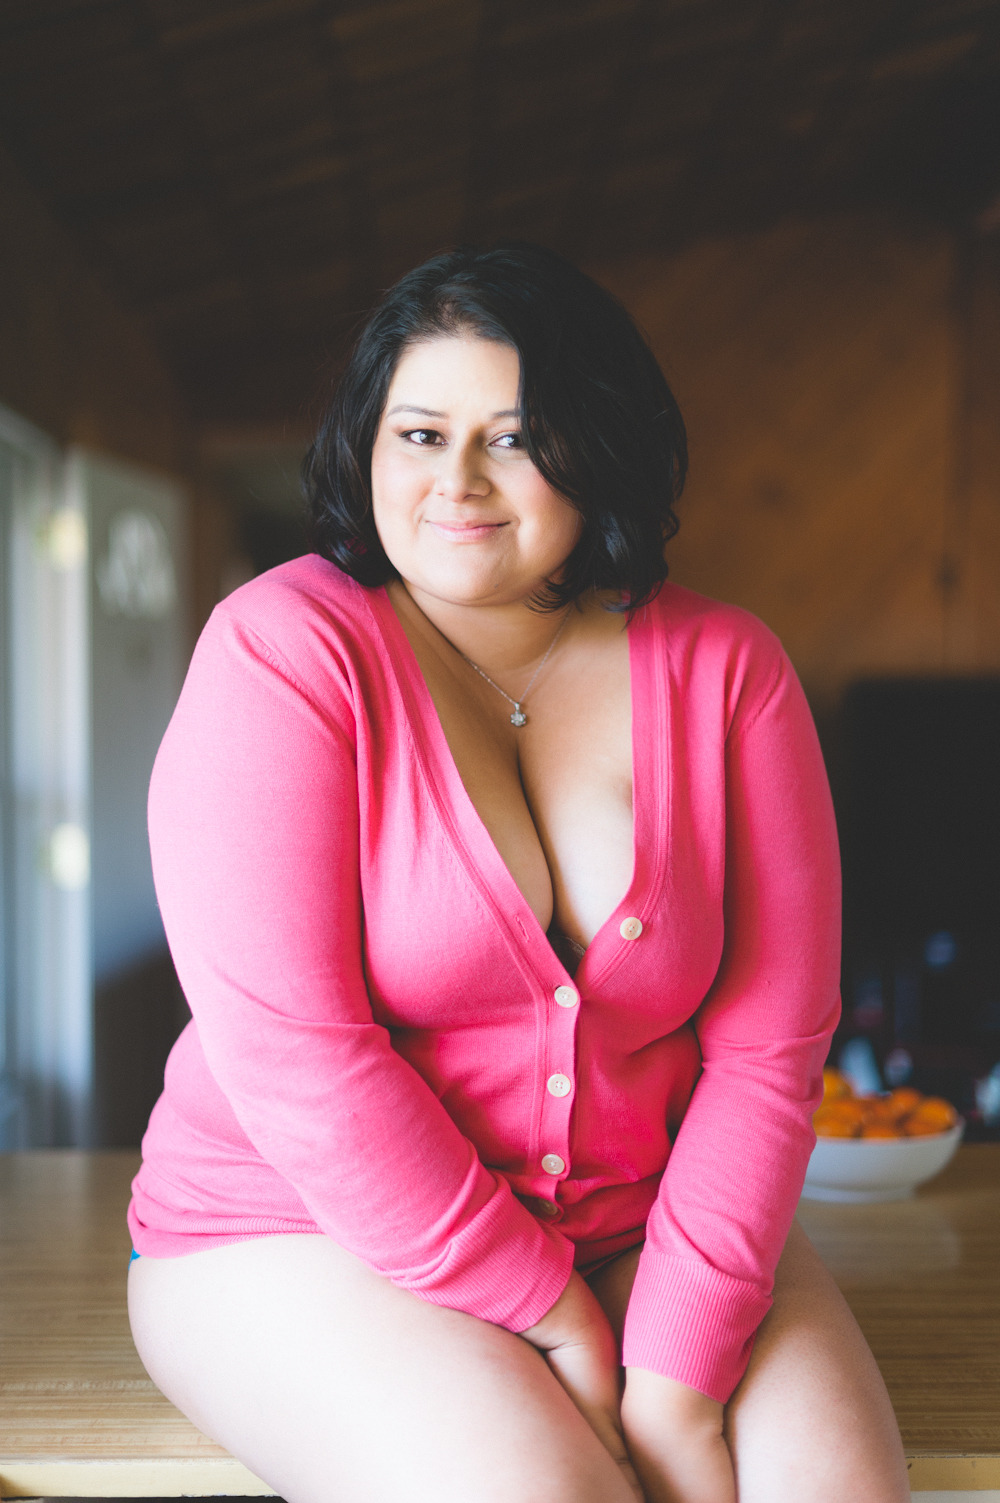 marlow bbw dating site It goes without saying that plus size dating has been increasingly more popular lately in the world, including in the au one bbw is fit for folks who live in the au.